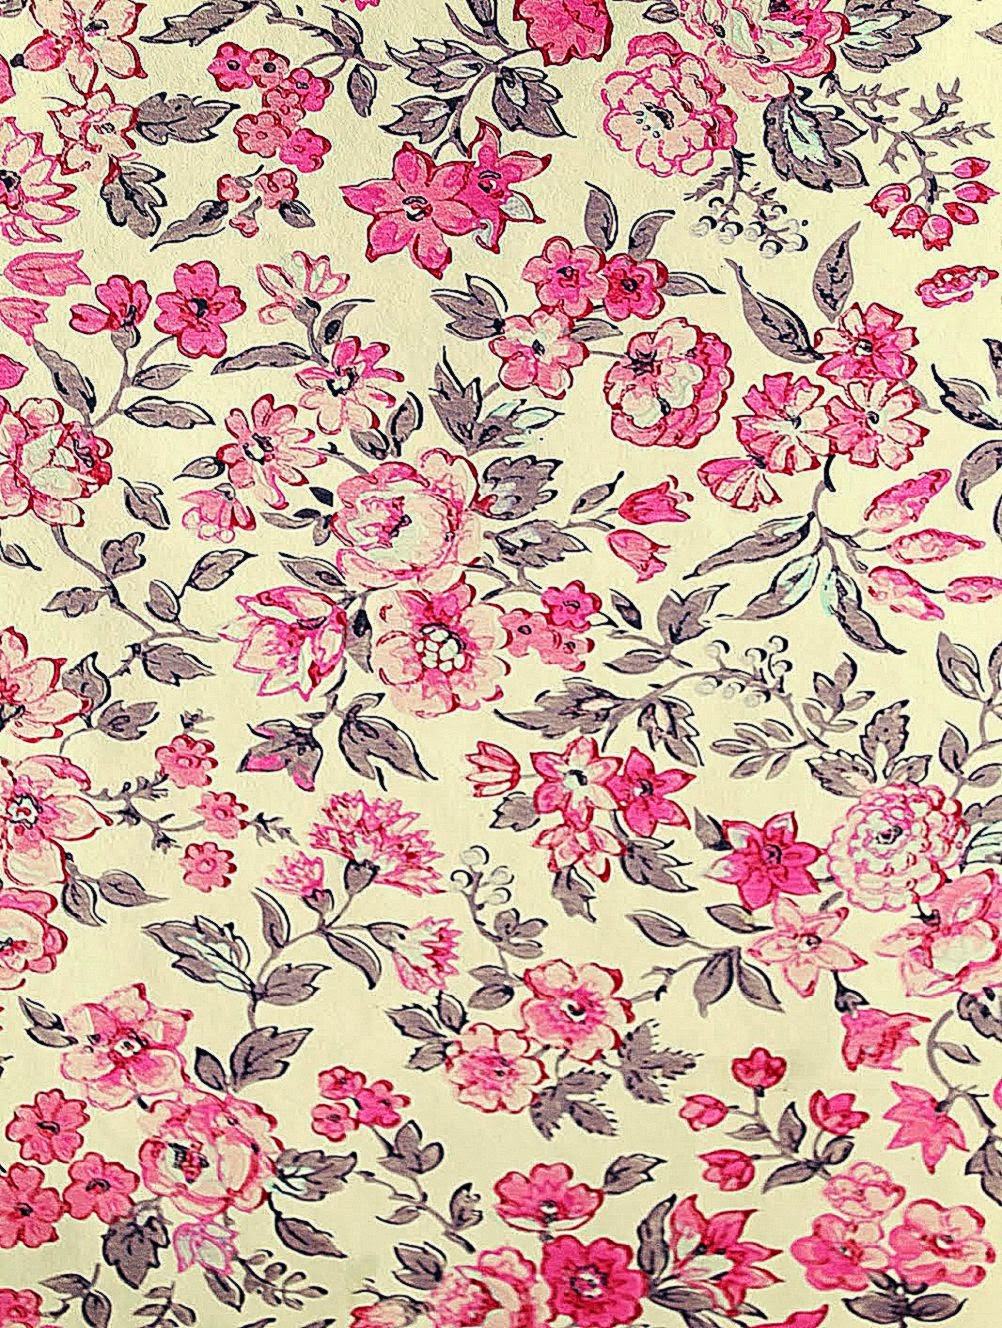 Backgrounds For gt Wallpaper Tumblr Iphone Vintage